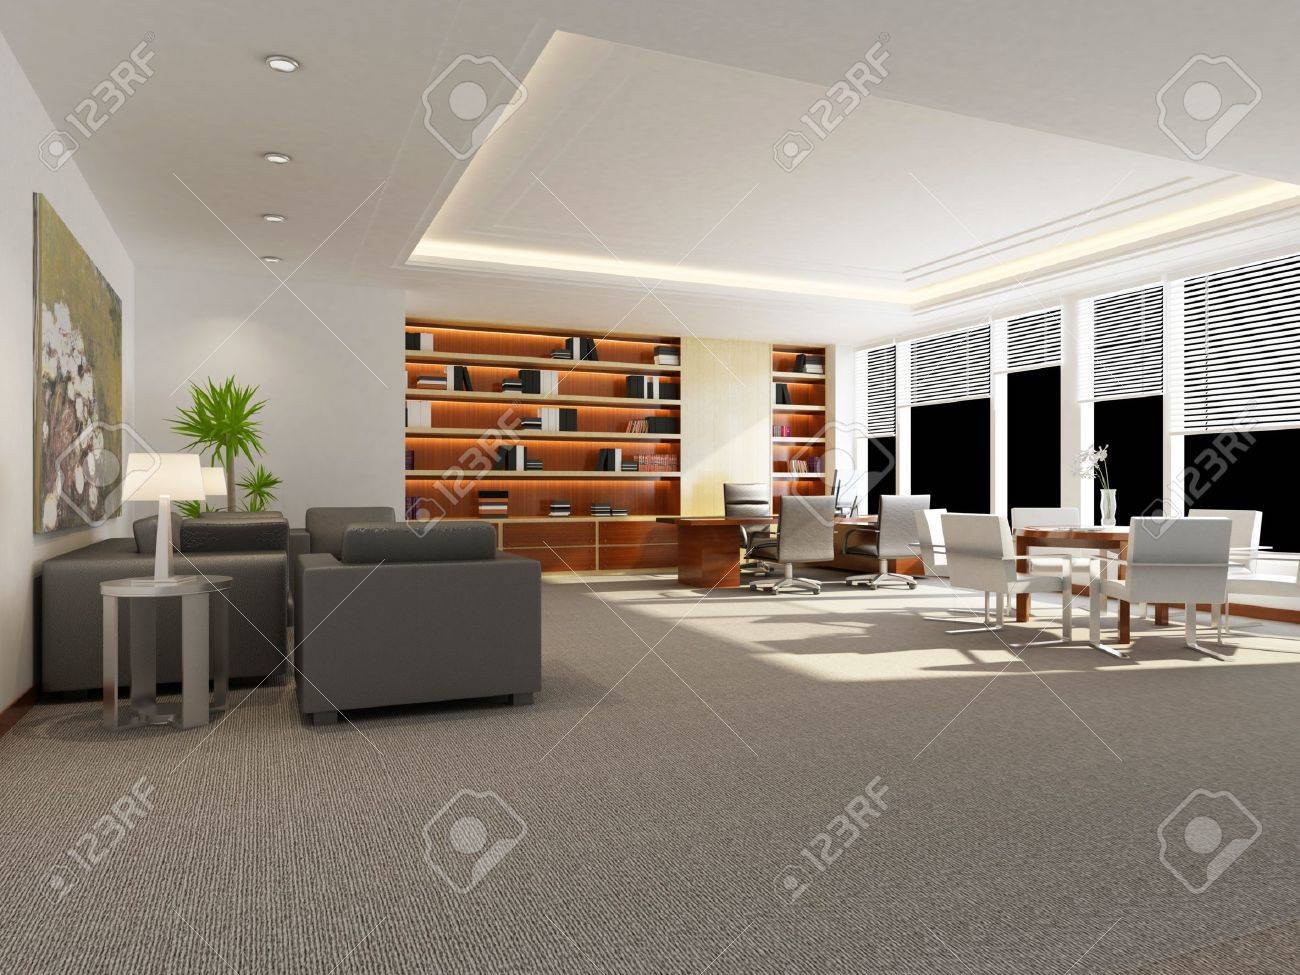 modern office interior 3d rendering Stock Photo - 9821256 & Modern Office Interior 3d Rendering Stock Photo Picture And Royalty ...